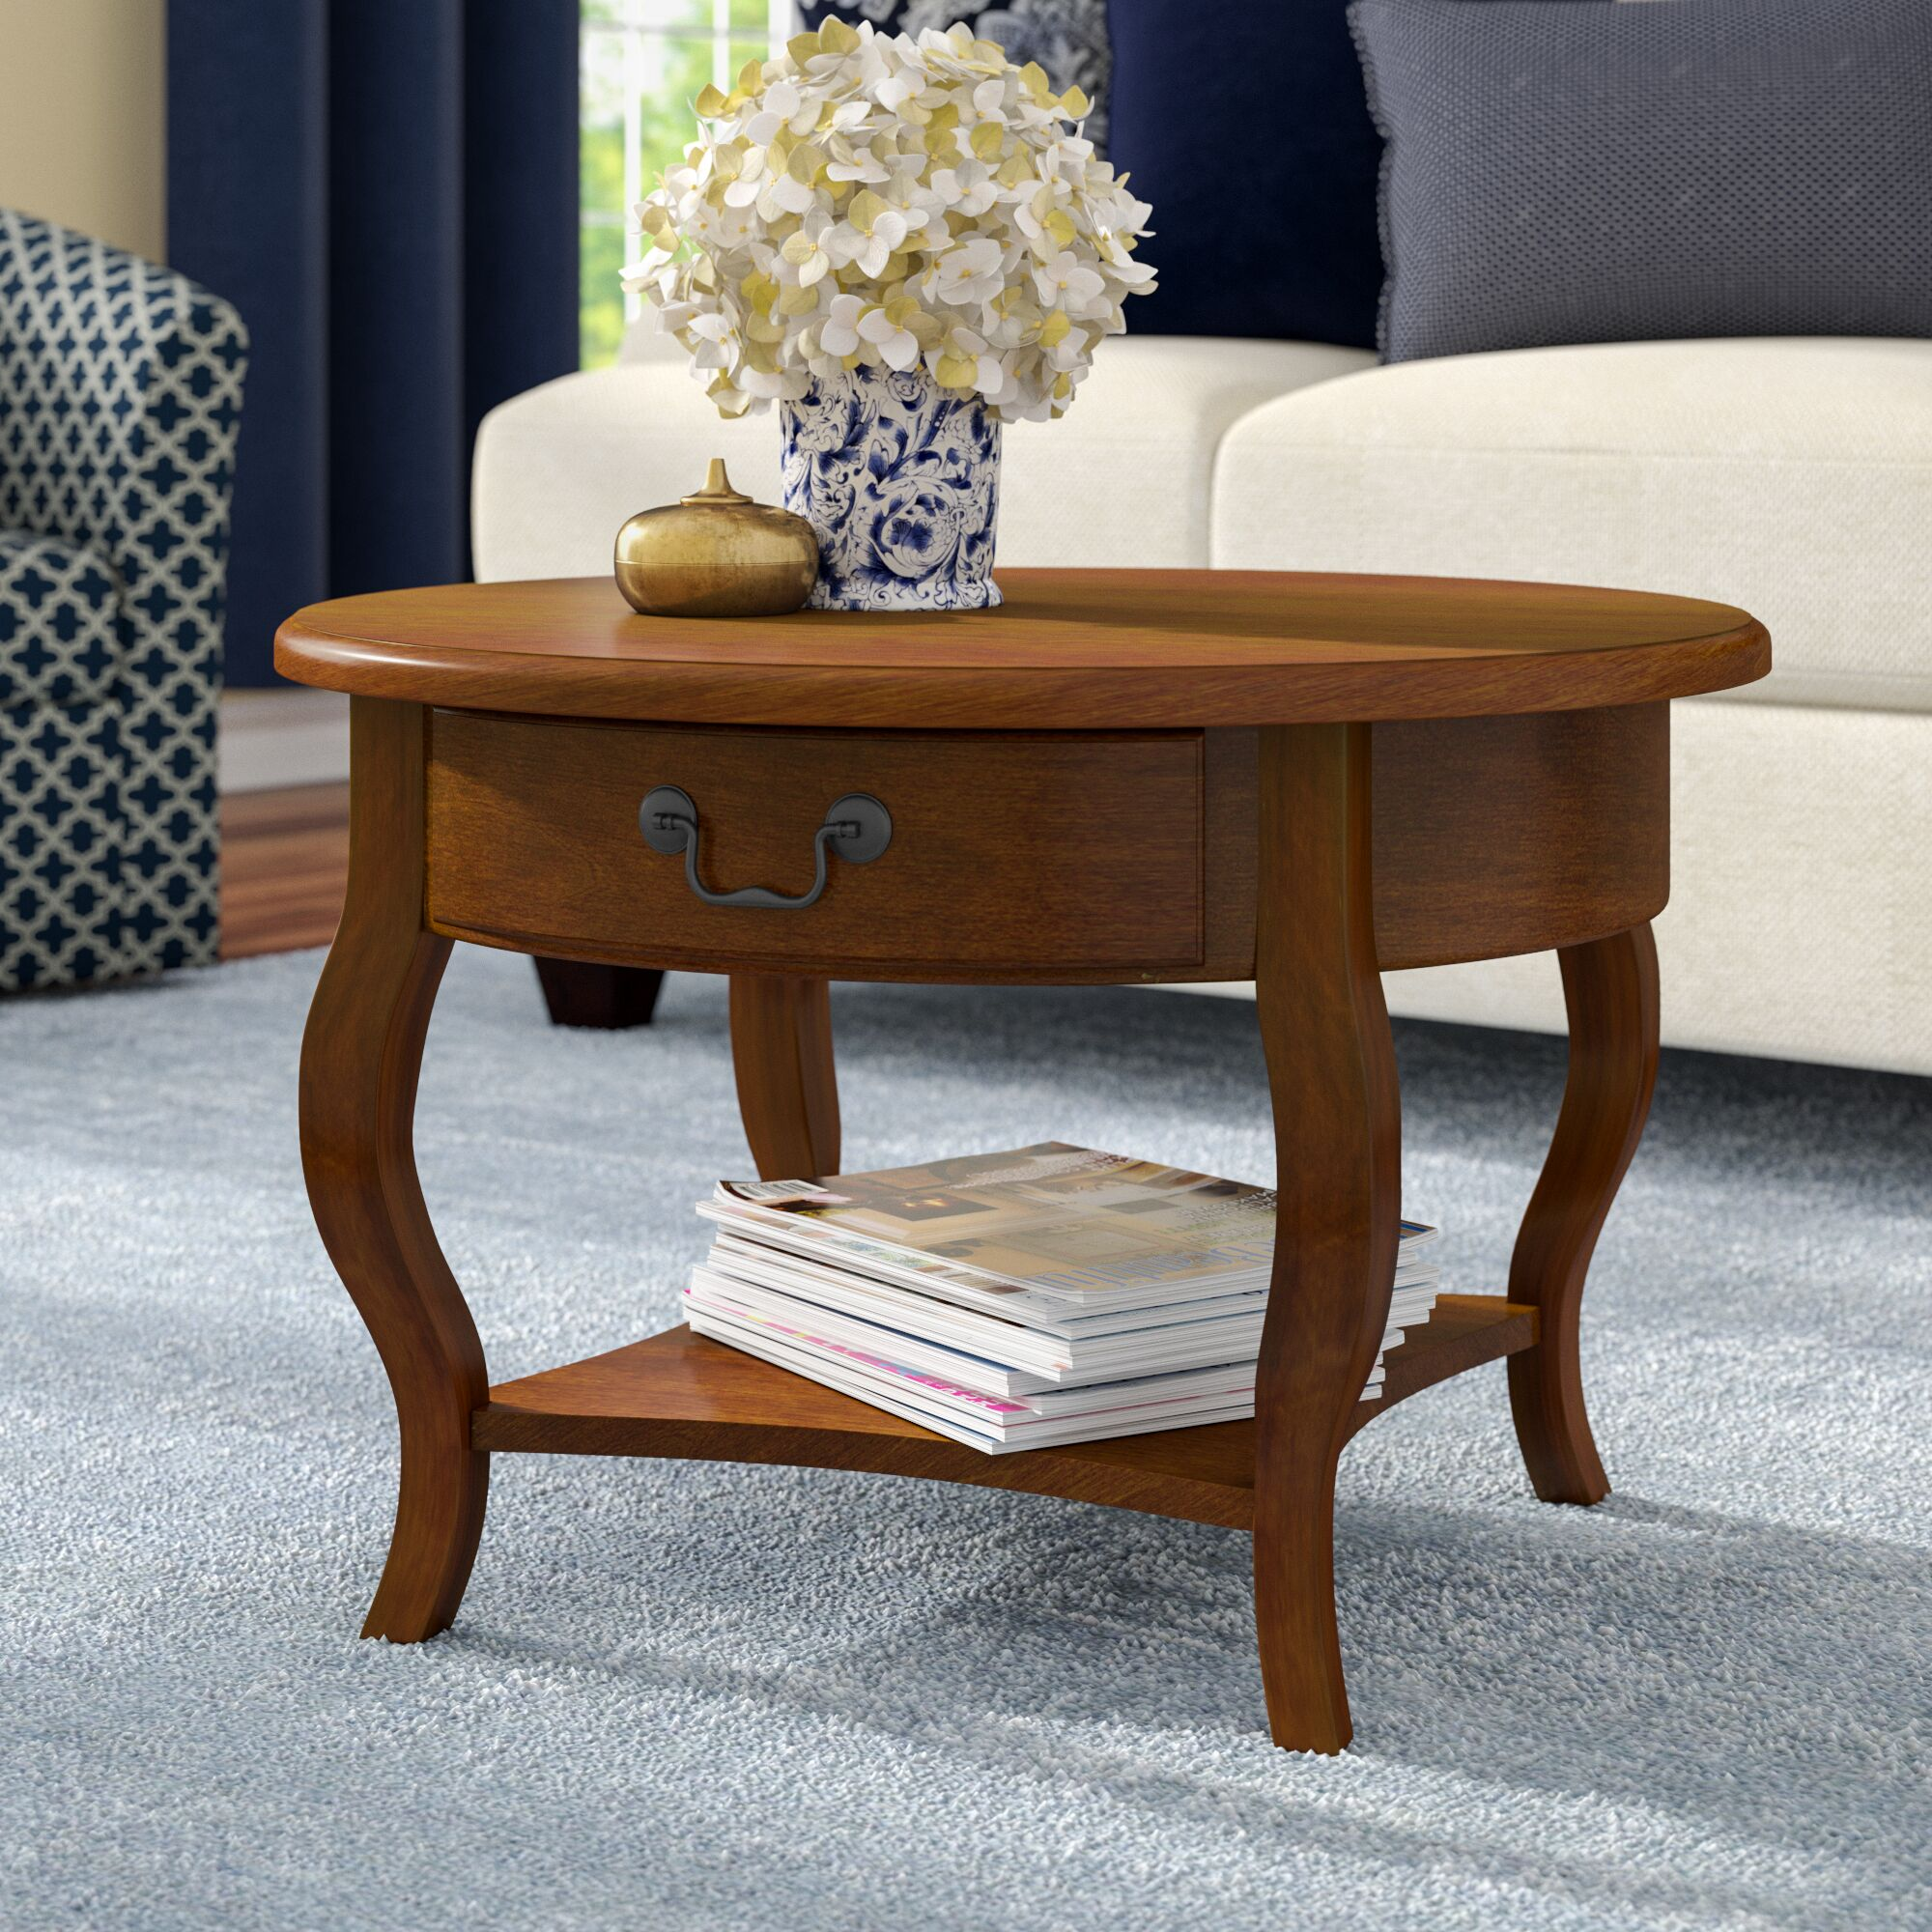 Apple Valley Coffee Table Color: Brown Cherry